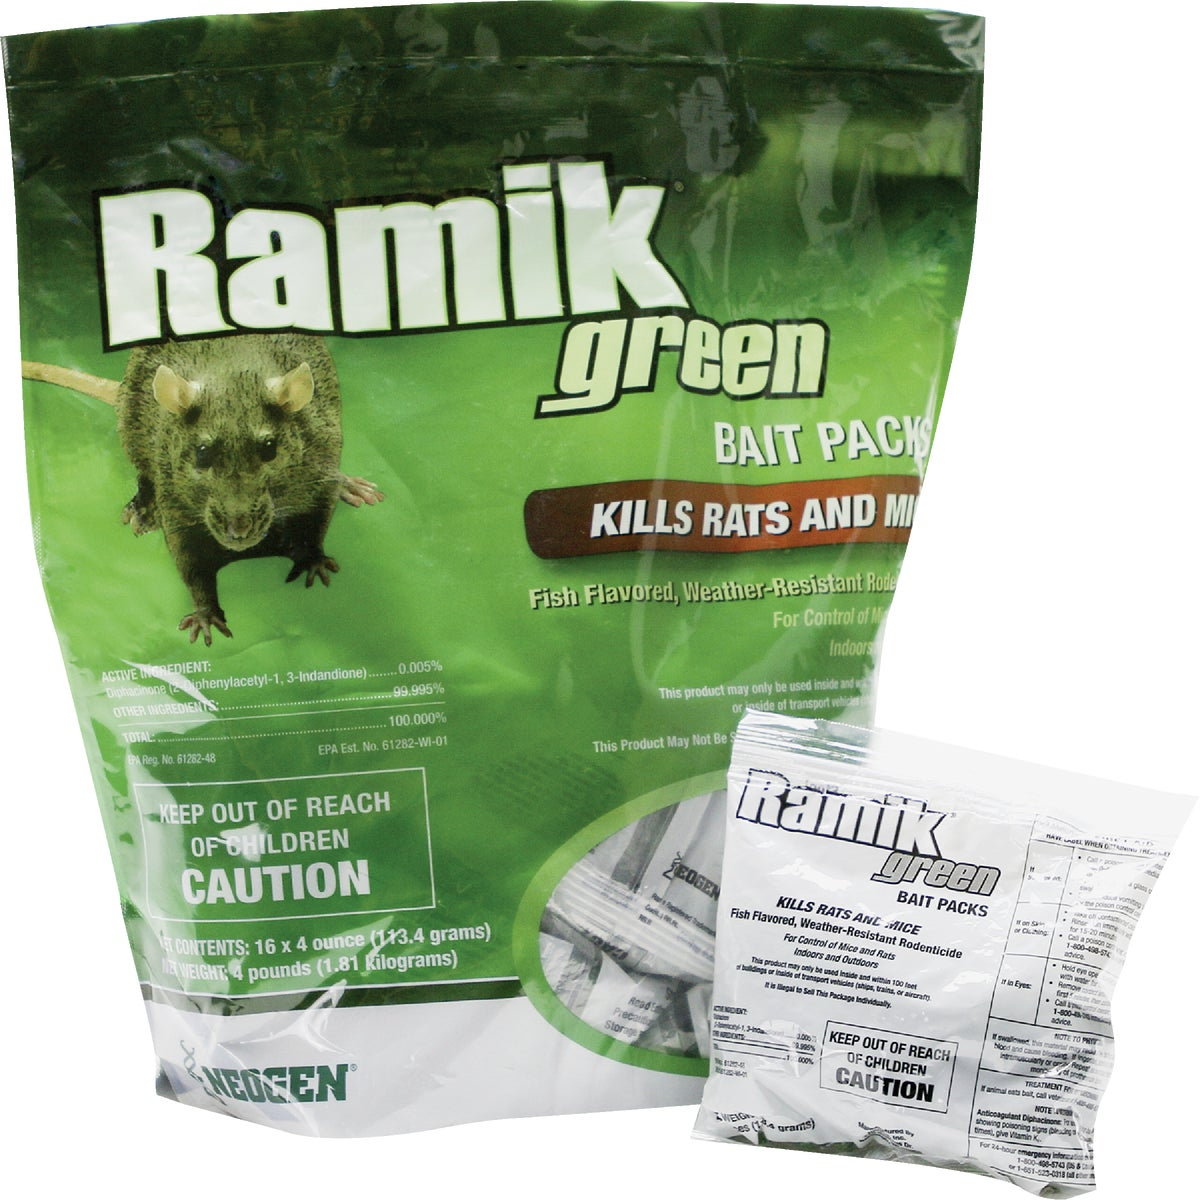 Item 708808, Controls Norway rats, roof rats, and house mice. Moisture-resistant 1/2 In. bait pellets. Packaged in ready-to-use bait packs that rodents gnaw open.